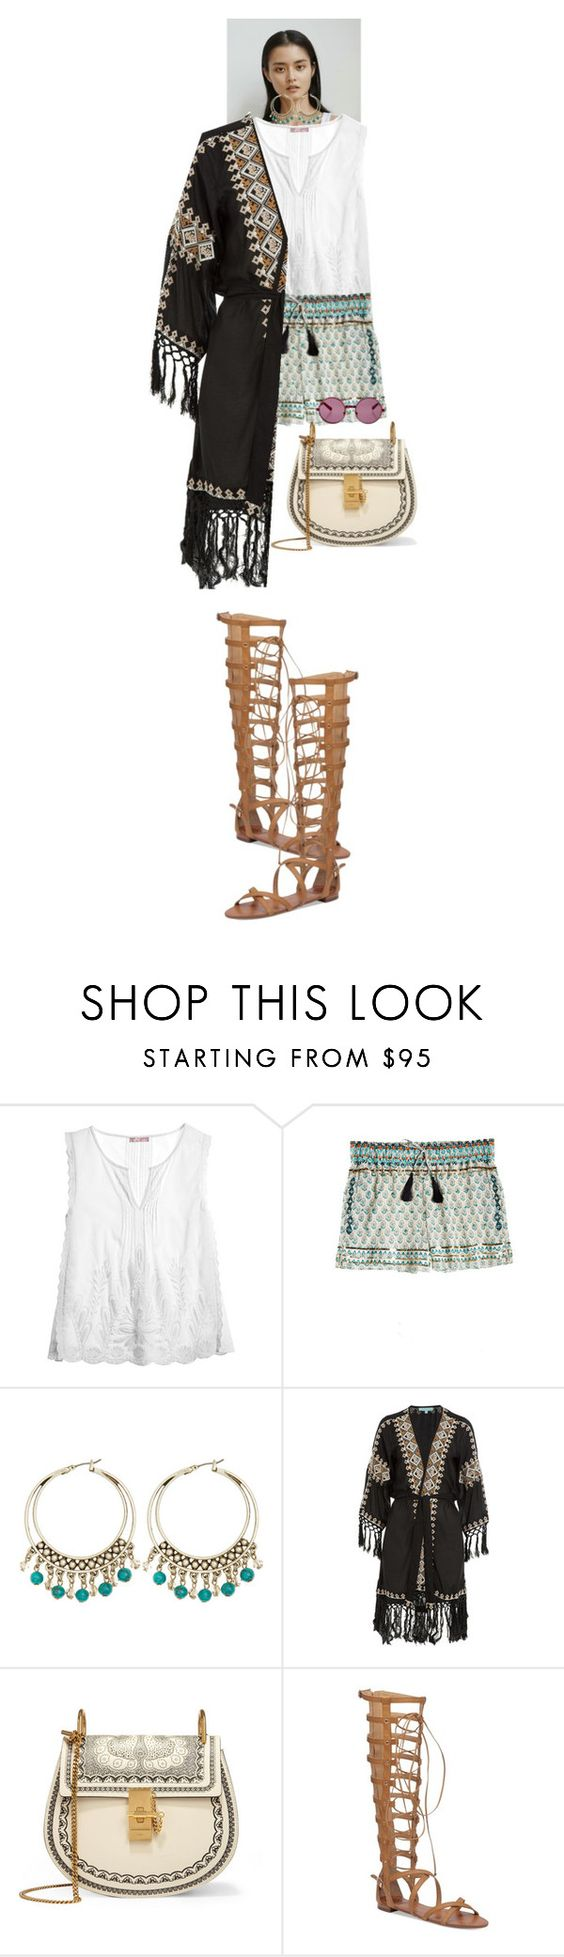 """""""Cressida #6198"""" by canlui ❤ liked on Polyvore featuring Calypso St. Barth, Calypso Private Label, Melissa Odabash, Chloé, Vince Camuto, House of Holland, GetTheLook, chic, simple and airportstyle"""